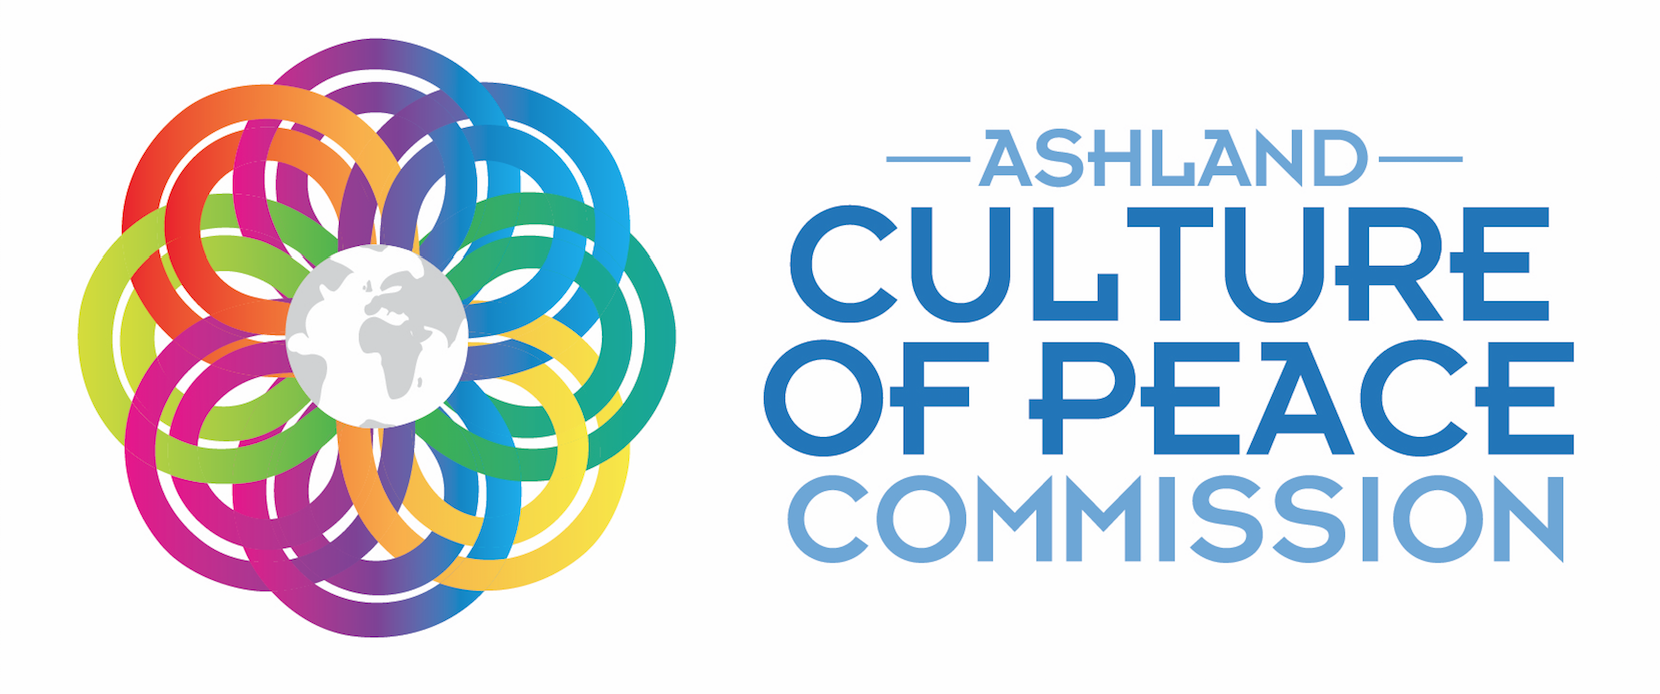 Photo of NEWS RELEASE – ASHLAND CULTURE OF PEACE